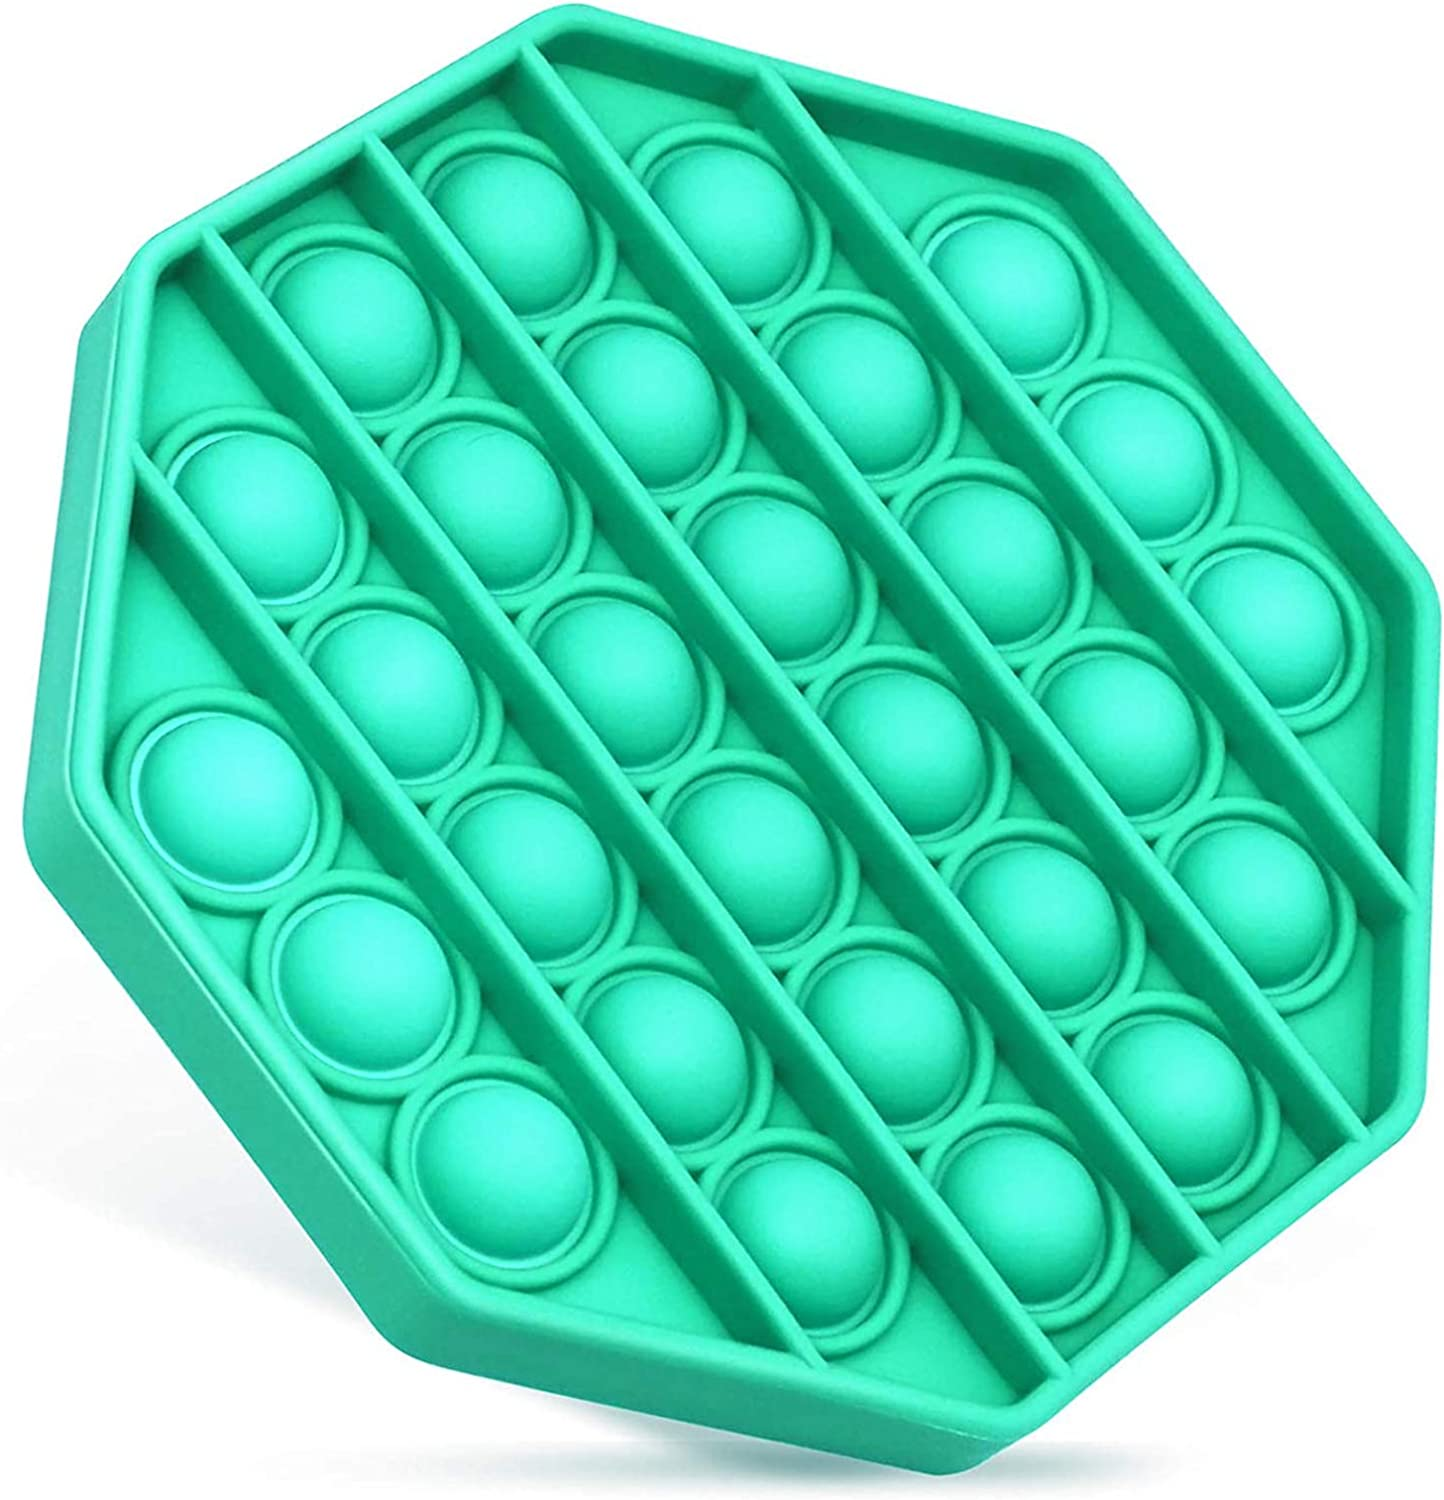 Push Pop Bubble Fidget Toy, Silicone Bubble Wrap Toy Push Pop Fidget Sensory Toy, Stress and Anxiety Relief Toys for Kids Adults(Octagon, Green